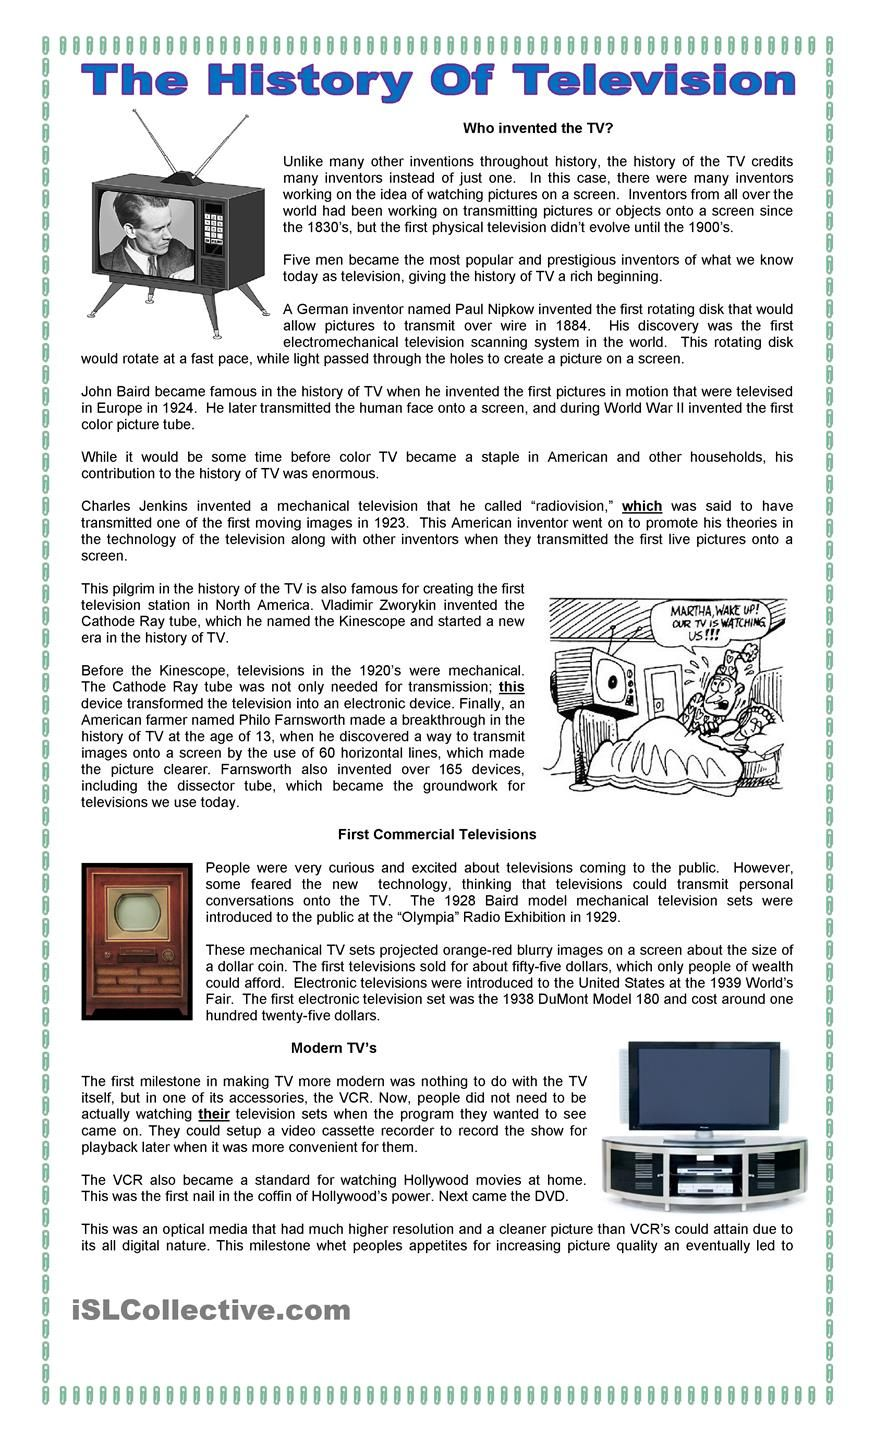 The History of TV | English worksheets | Pinterest | History, TVs ...